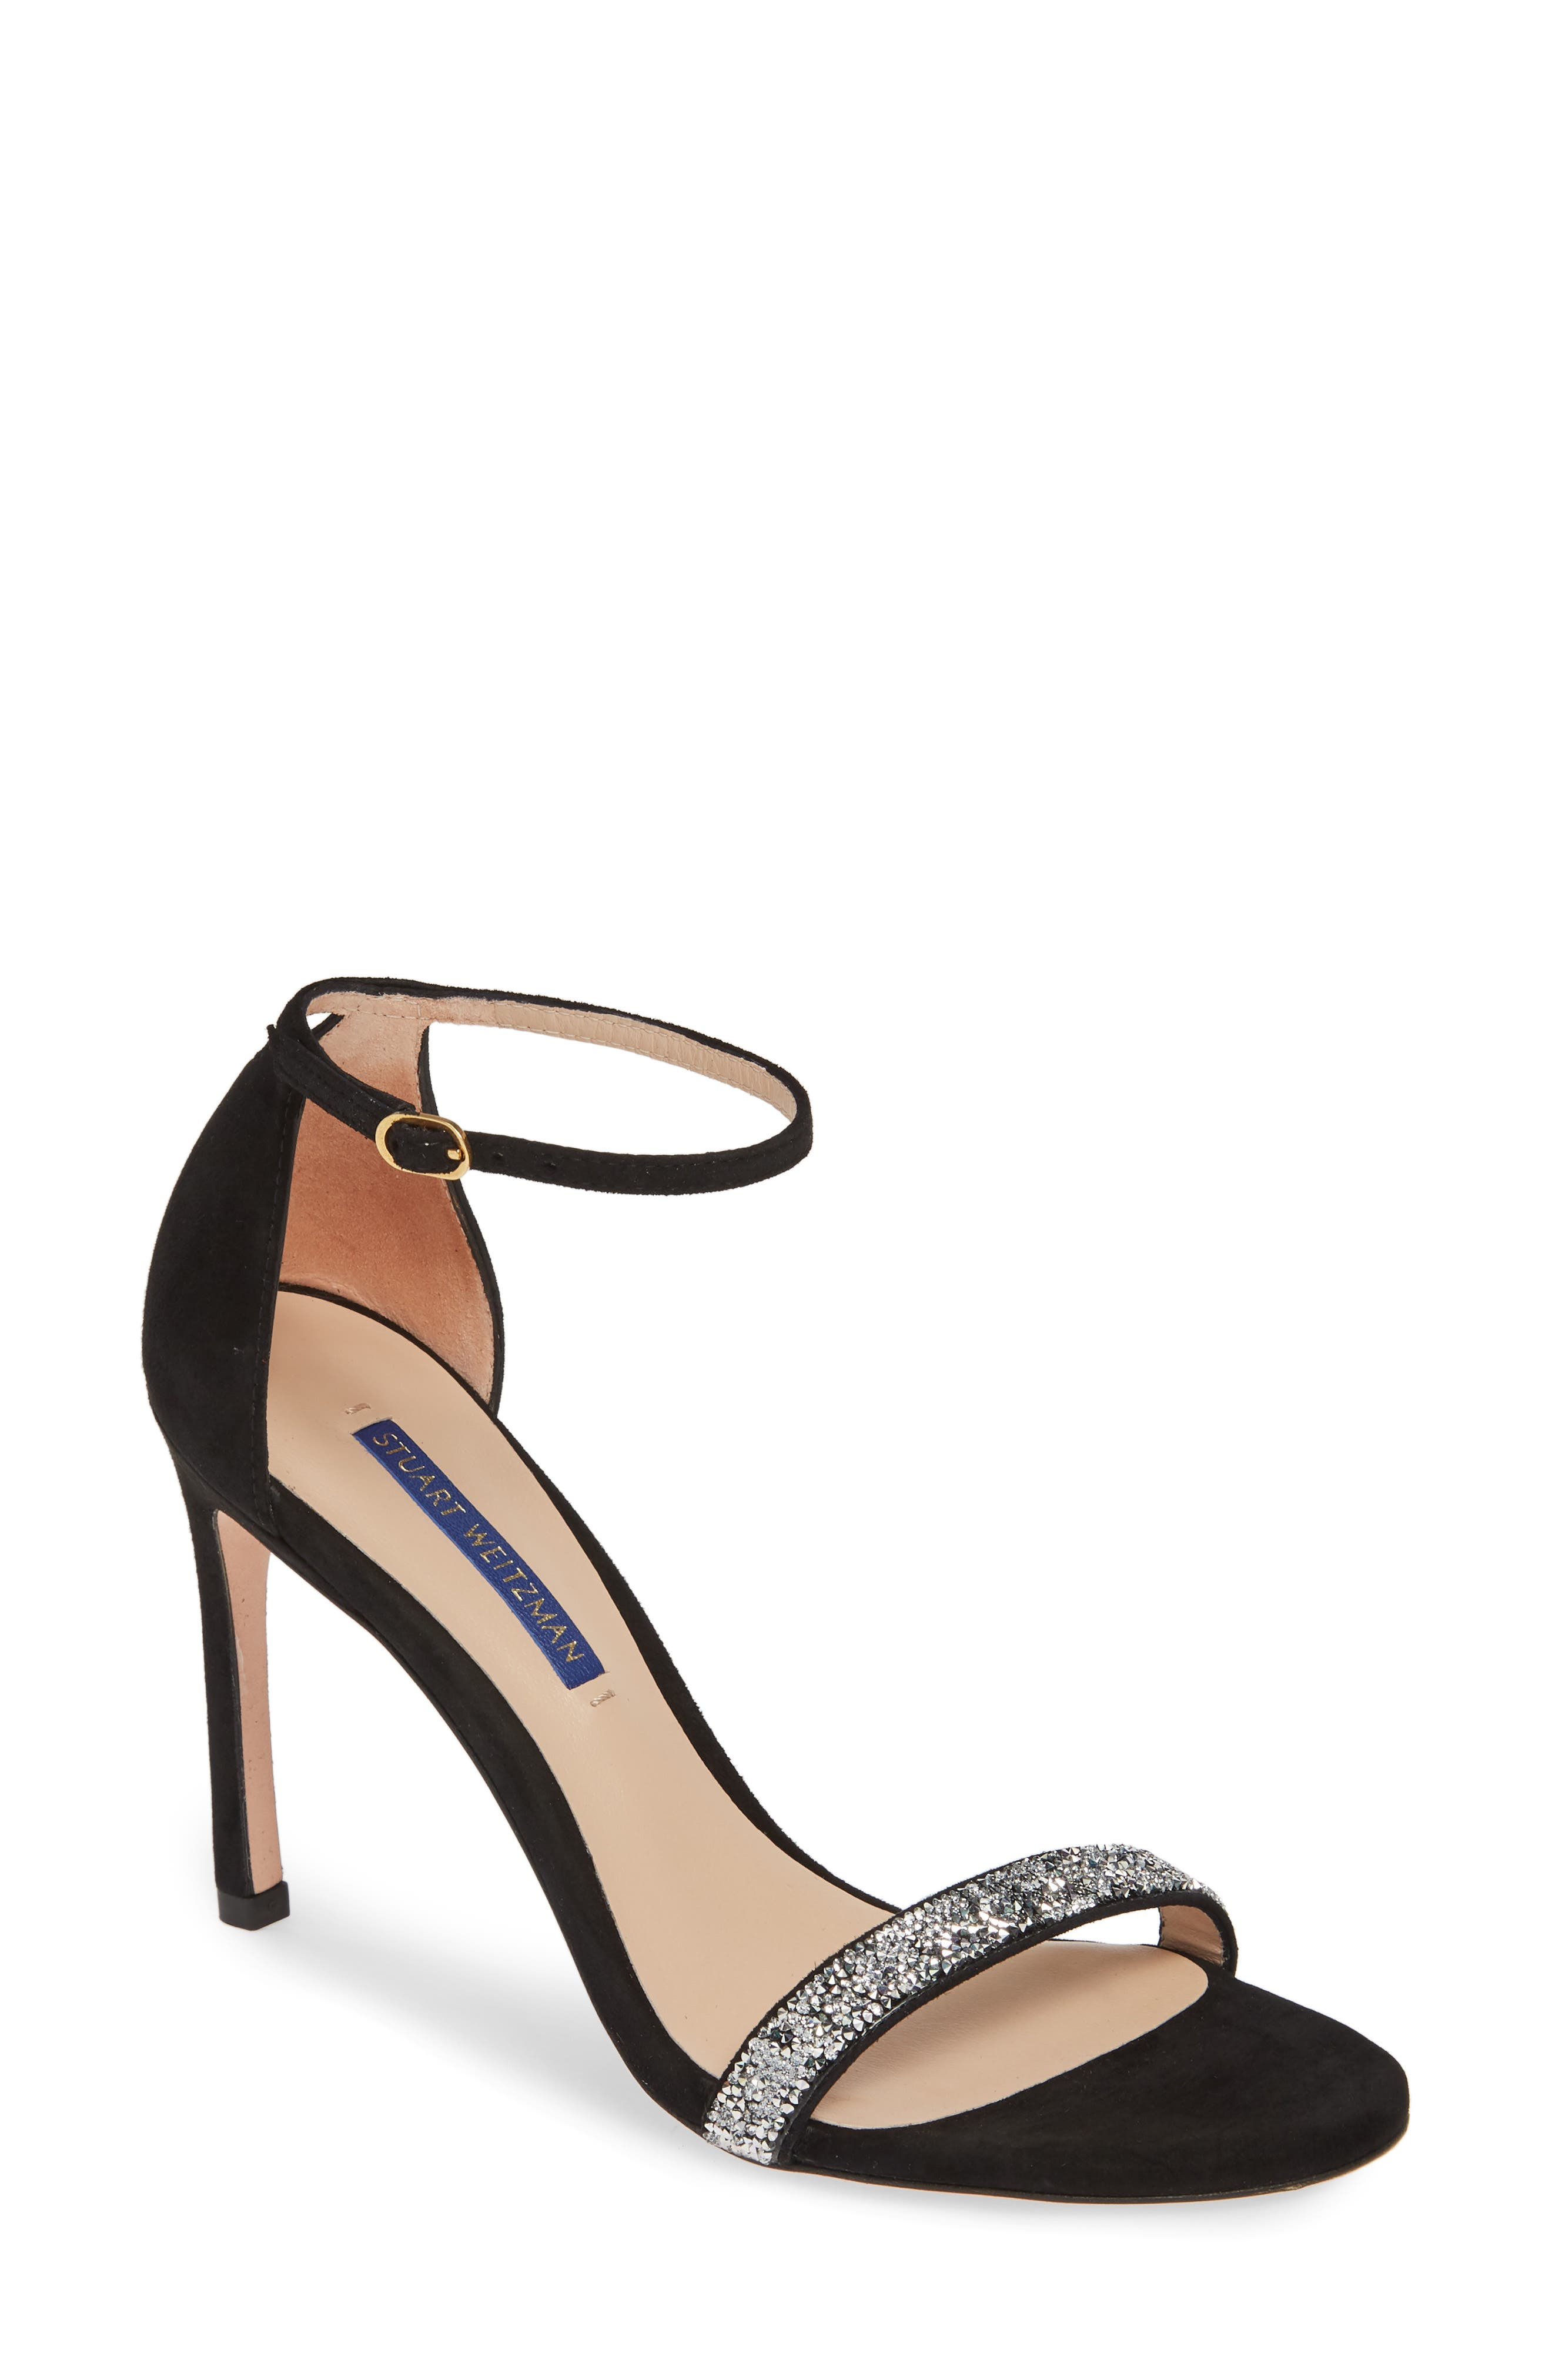 STUART WEITZMAN Nudistsong Ankle Strap Sandal, Main, color, BLACK